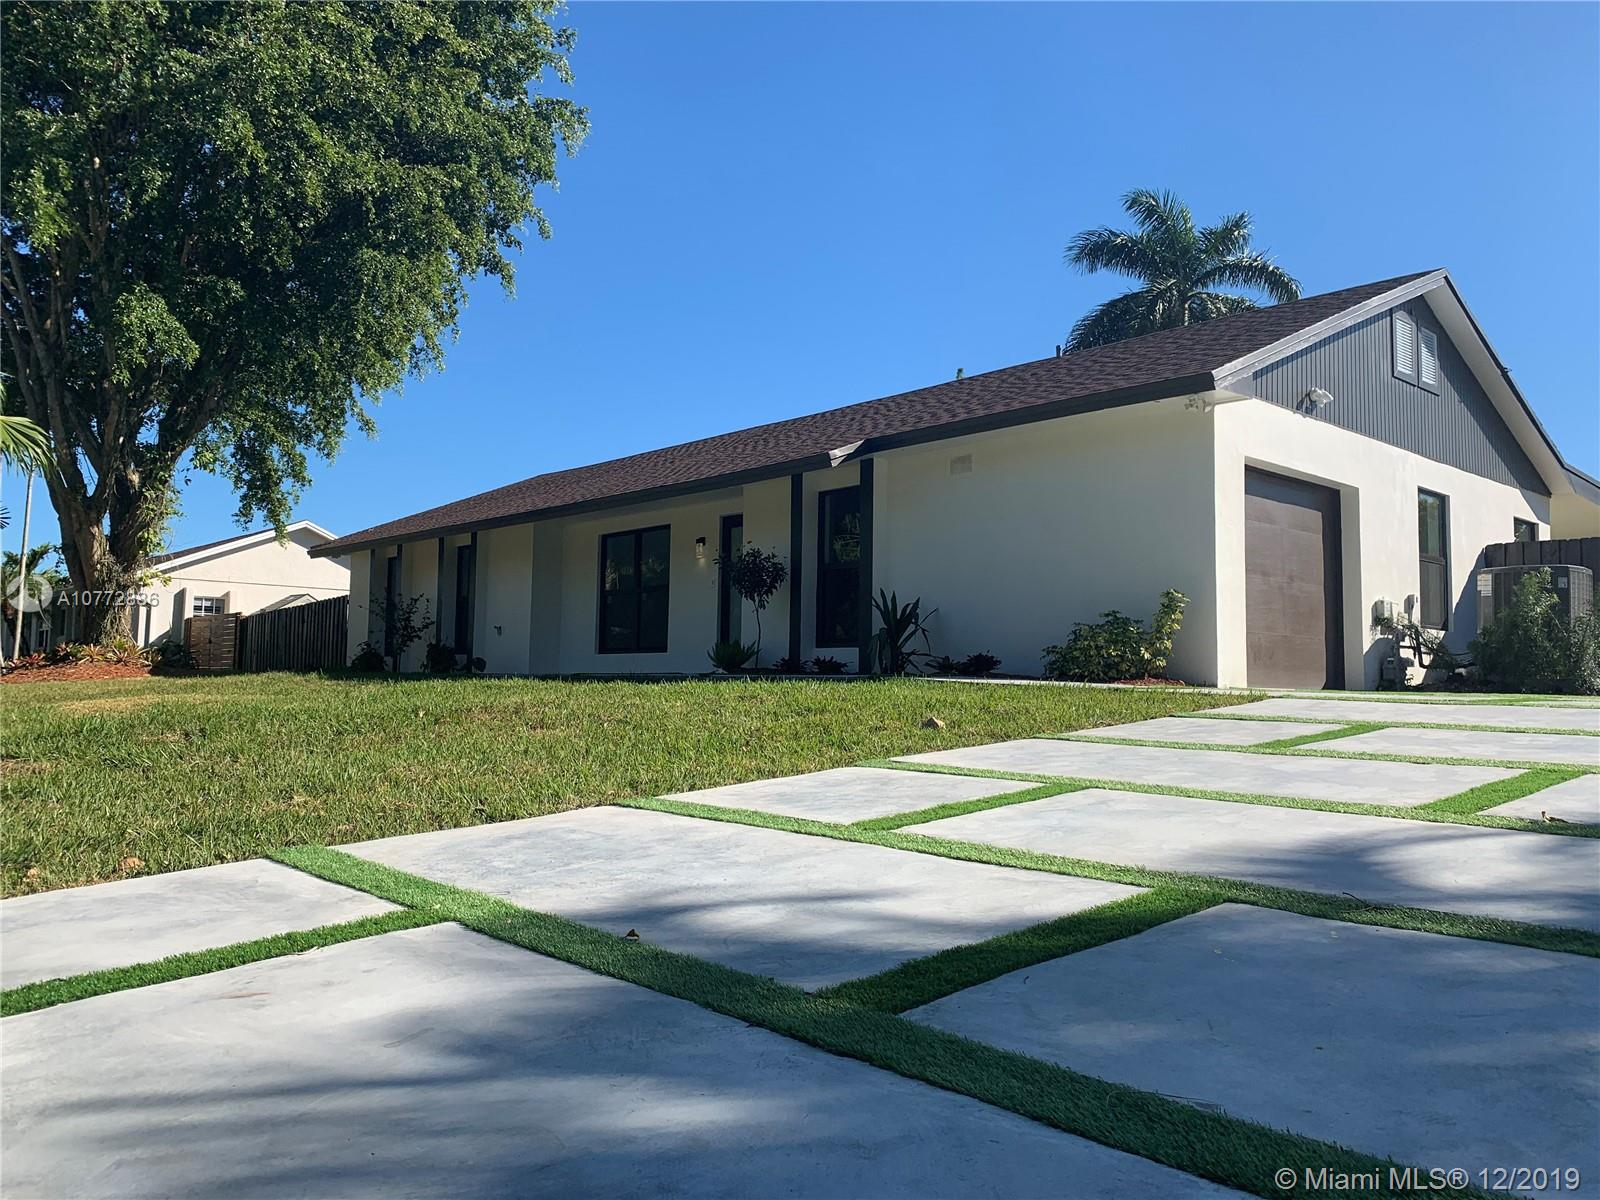 8840 SW 181st Ter, Kendall in Miami-dade County County, FL 33157 Home for Sale